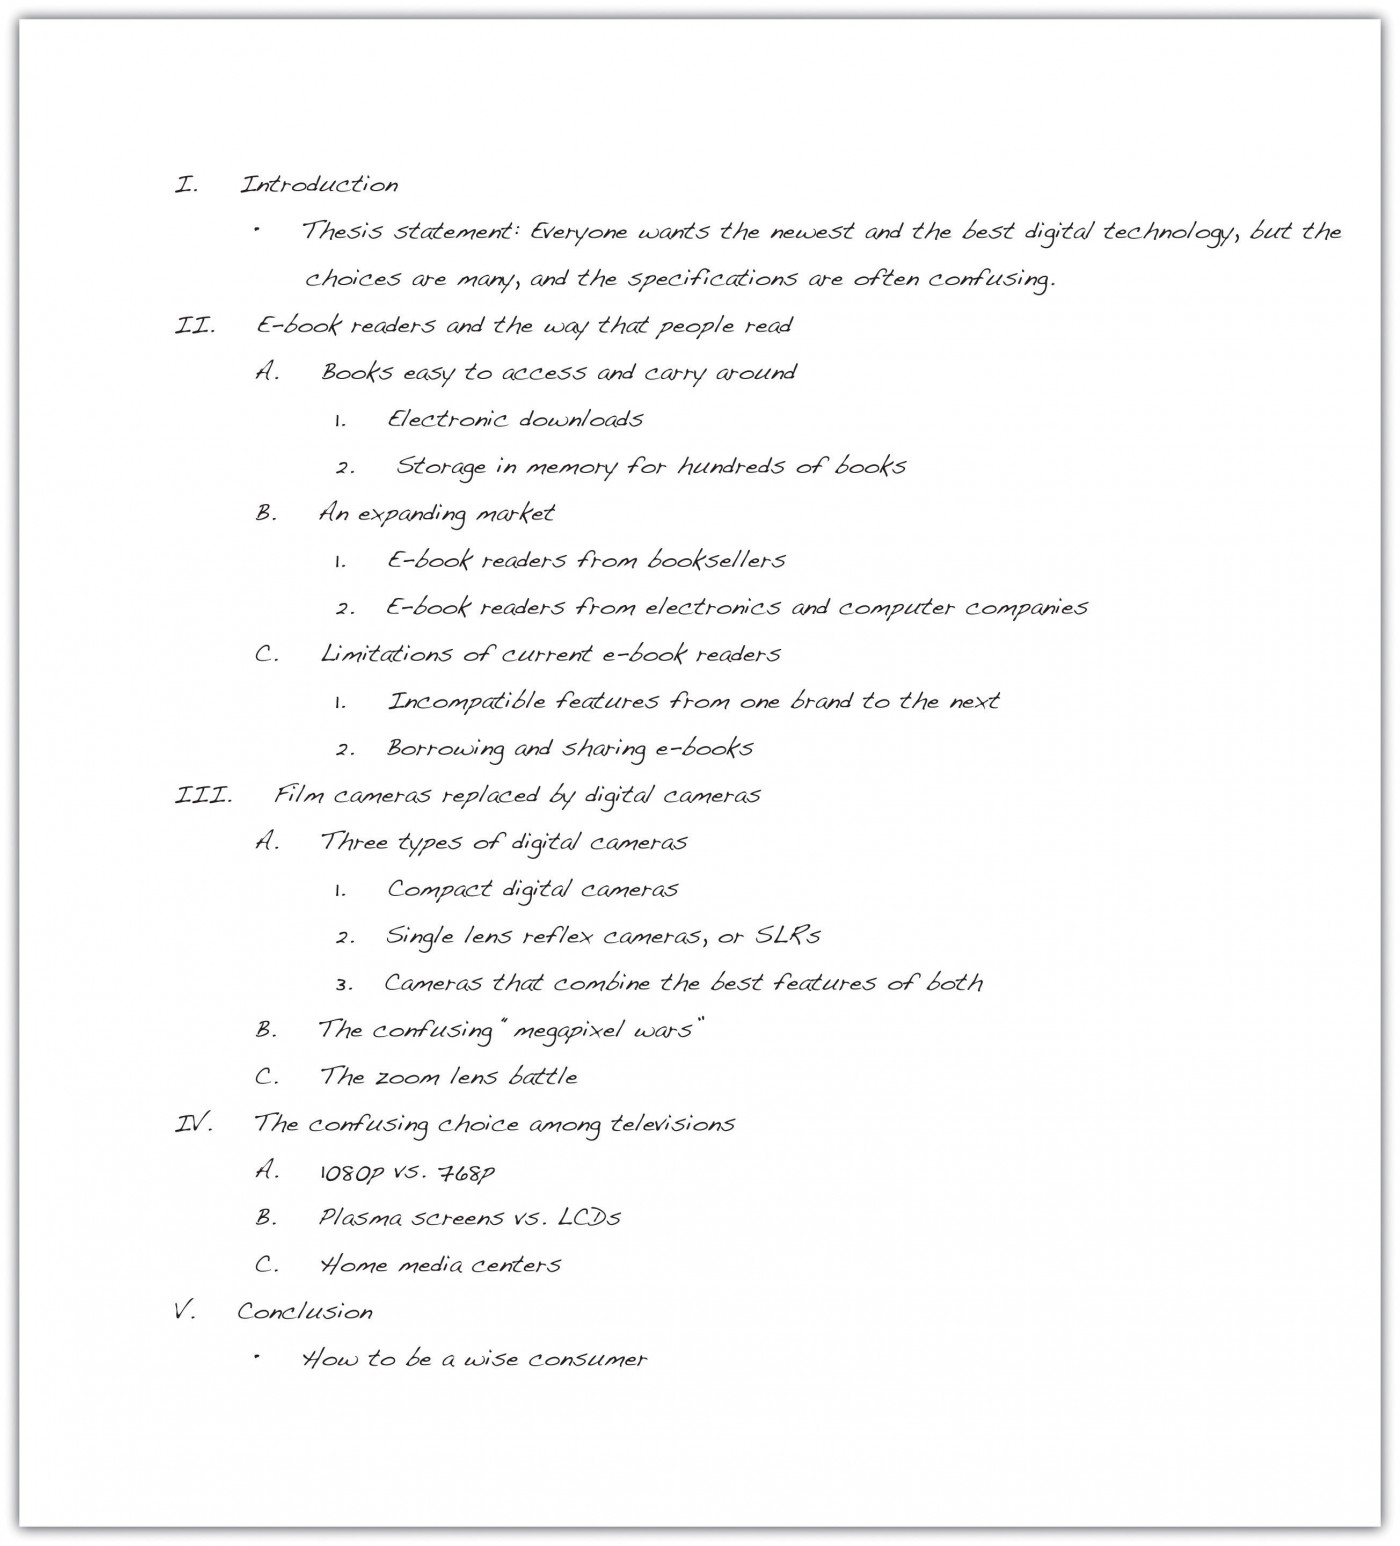 011 Research Paper Sample Outlines For Awful Papers Free Example Writing 1400